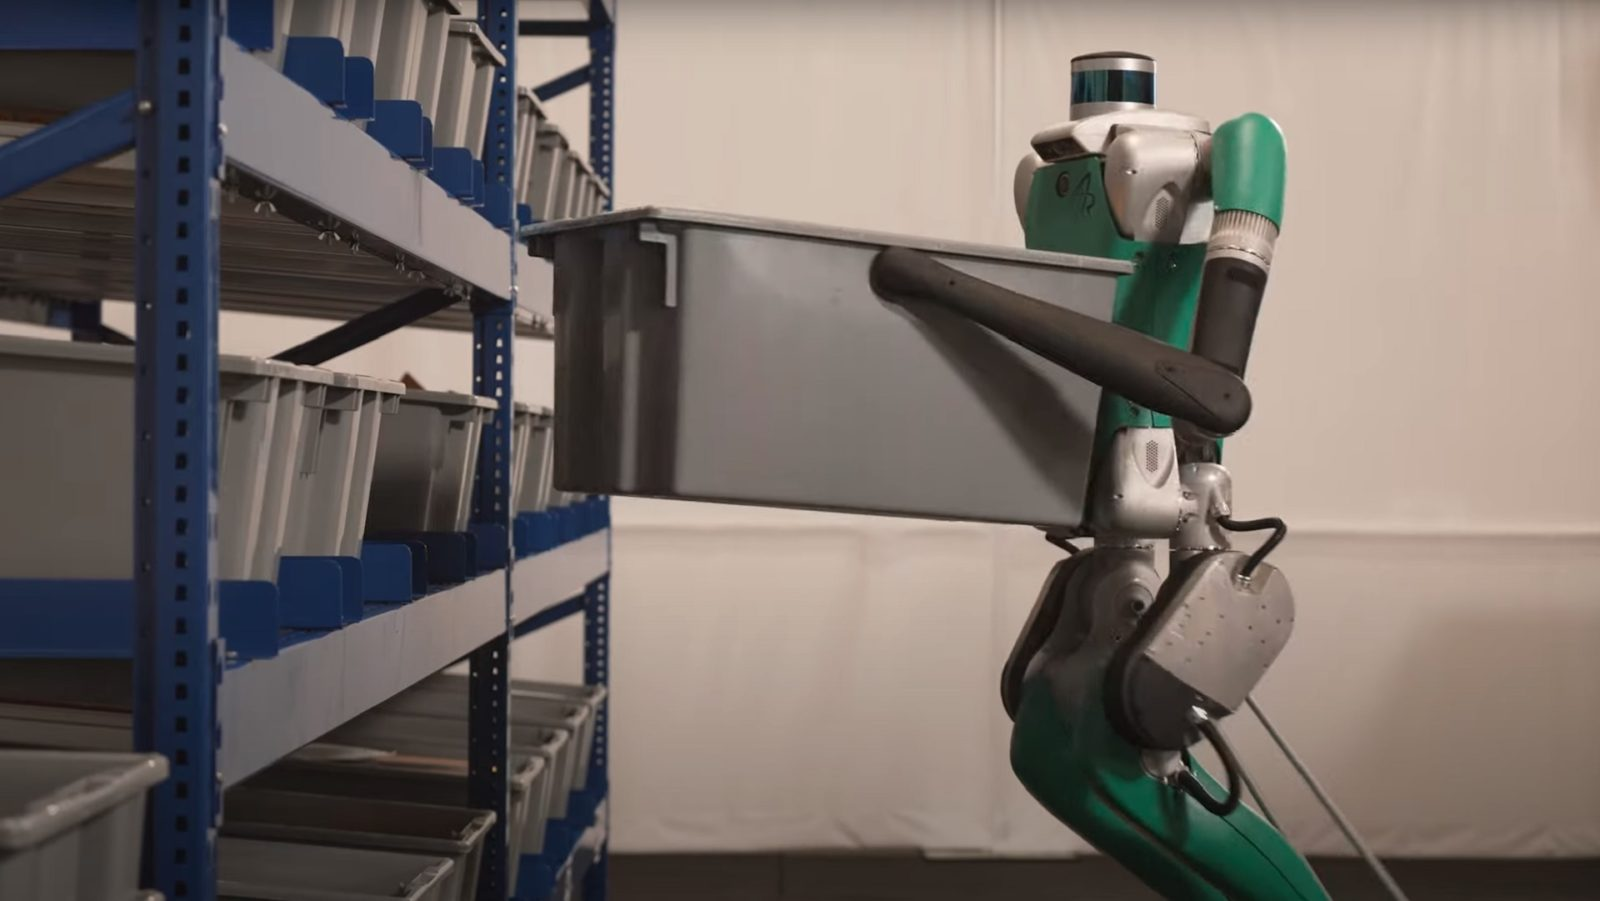 headless,-two-legged-robot-digit-is-now-ready-to-take-over-your-duties